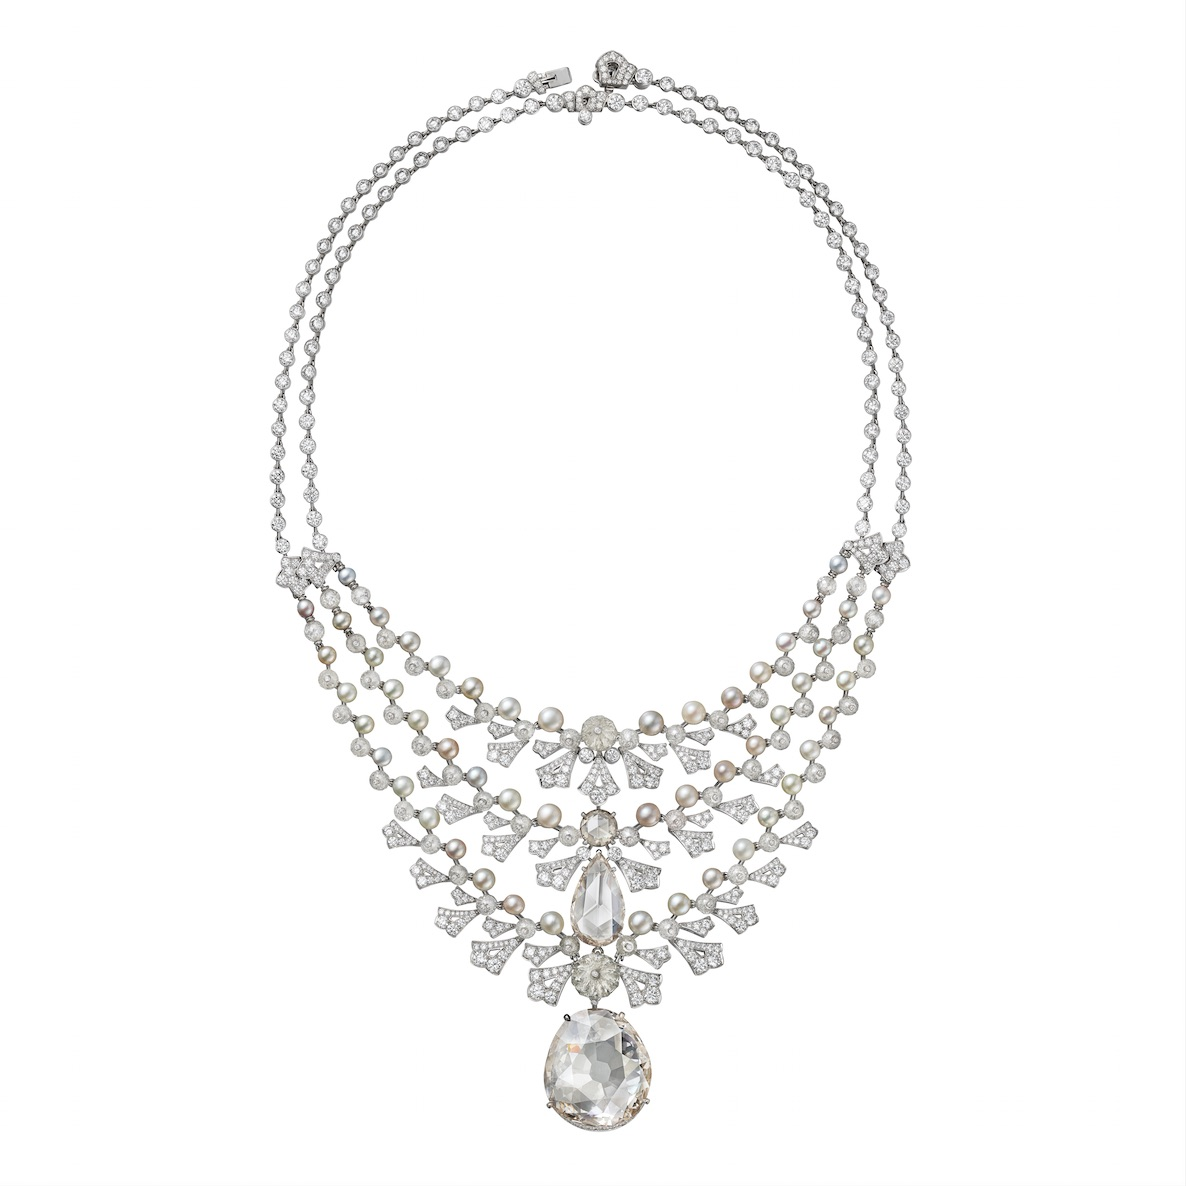 Cartier Magie Blanche necklace